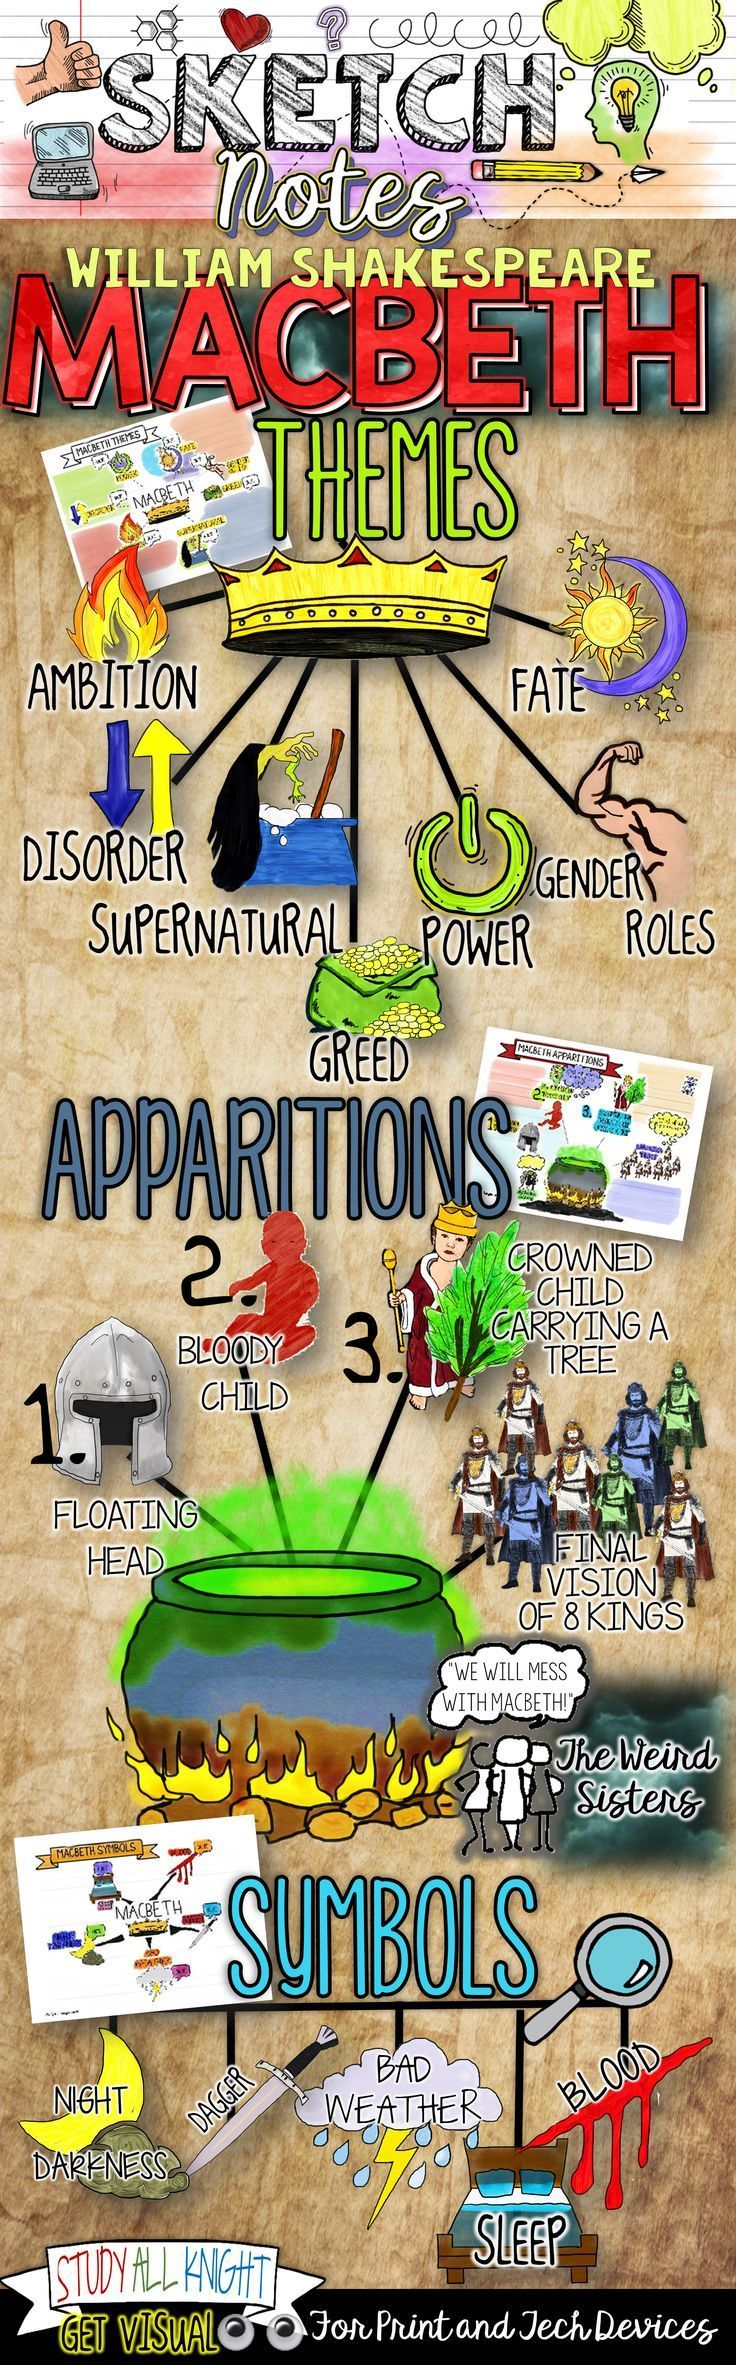 Macbeth Themes, Symbols, Apparitions, Sketch Notes, Guided